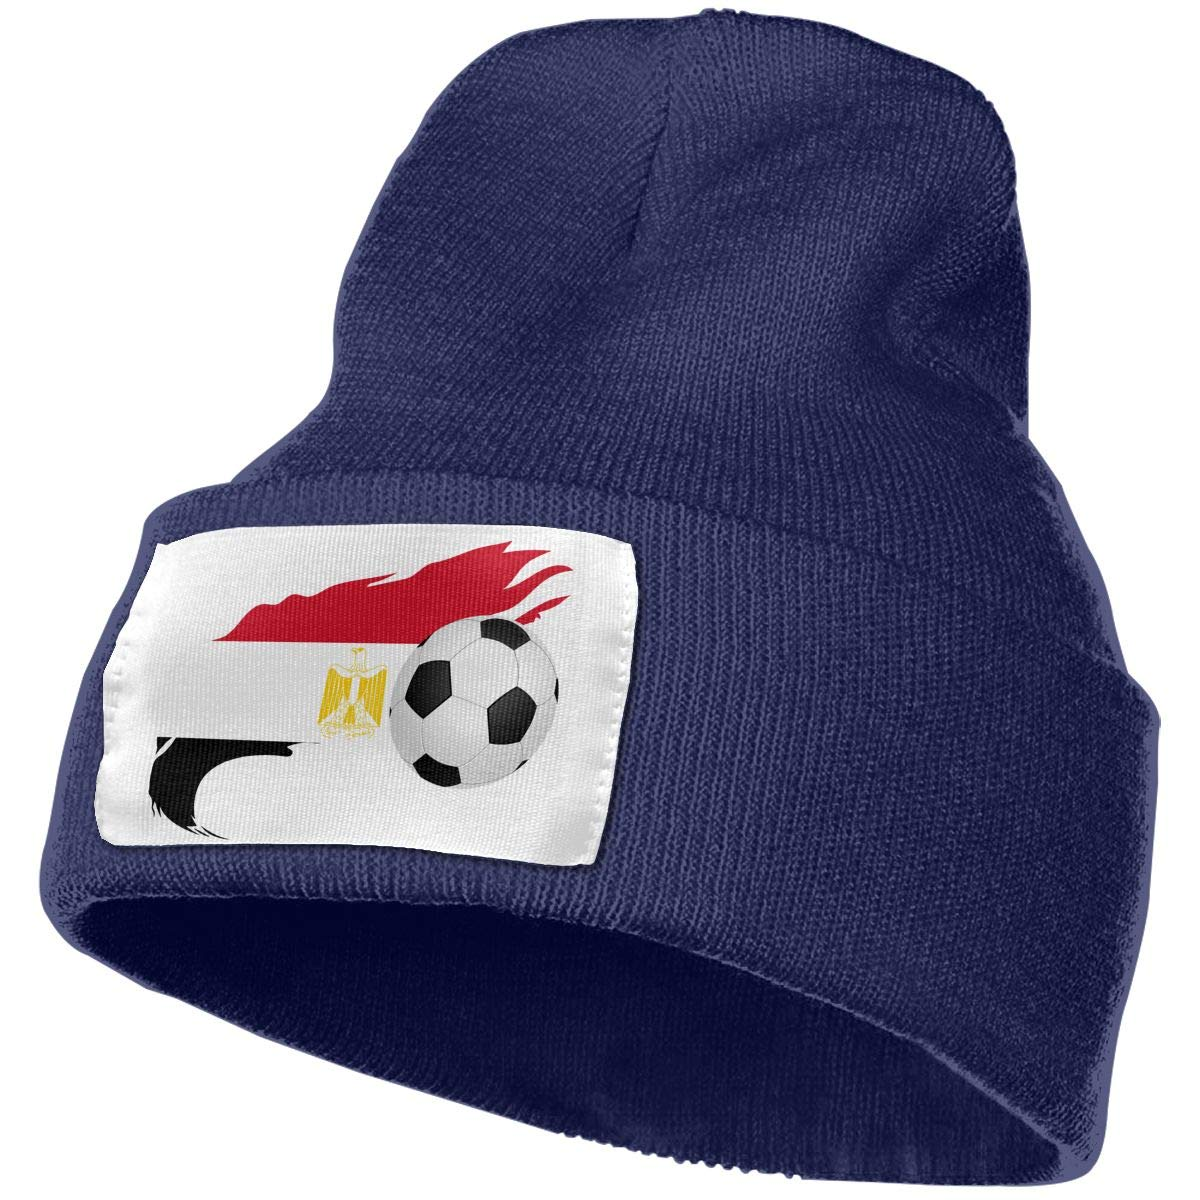 Soccer Ball with Egypt Flag Women and Men Skull Caps Winter Warm Stretchy Knit Beanie Hats